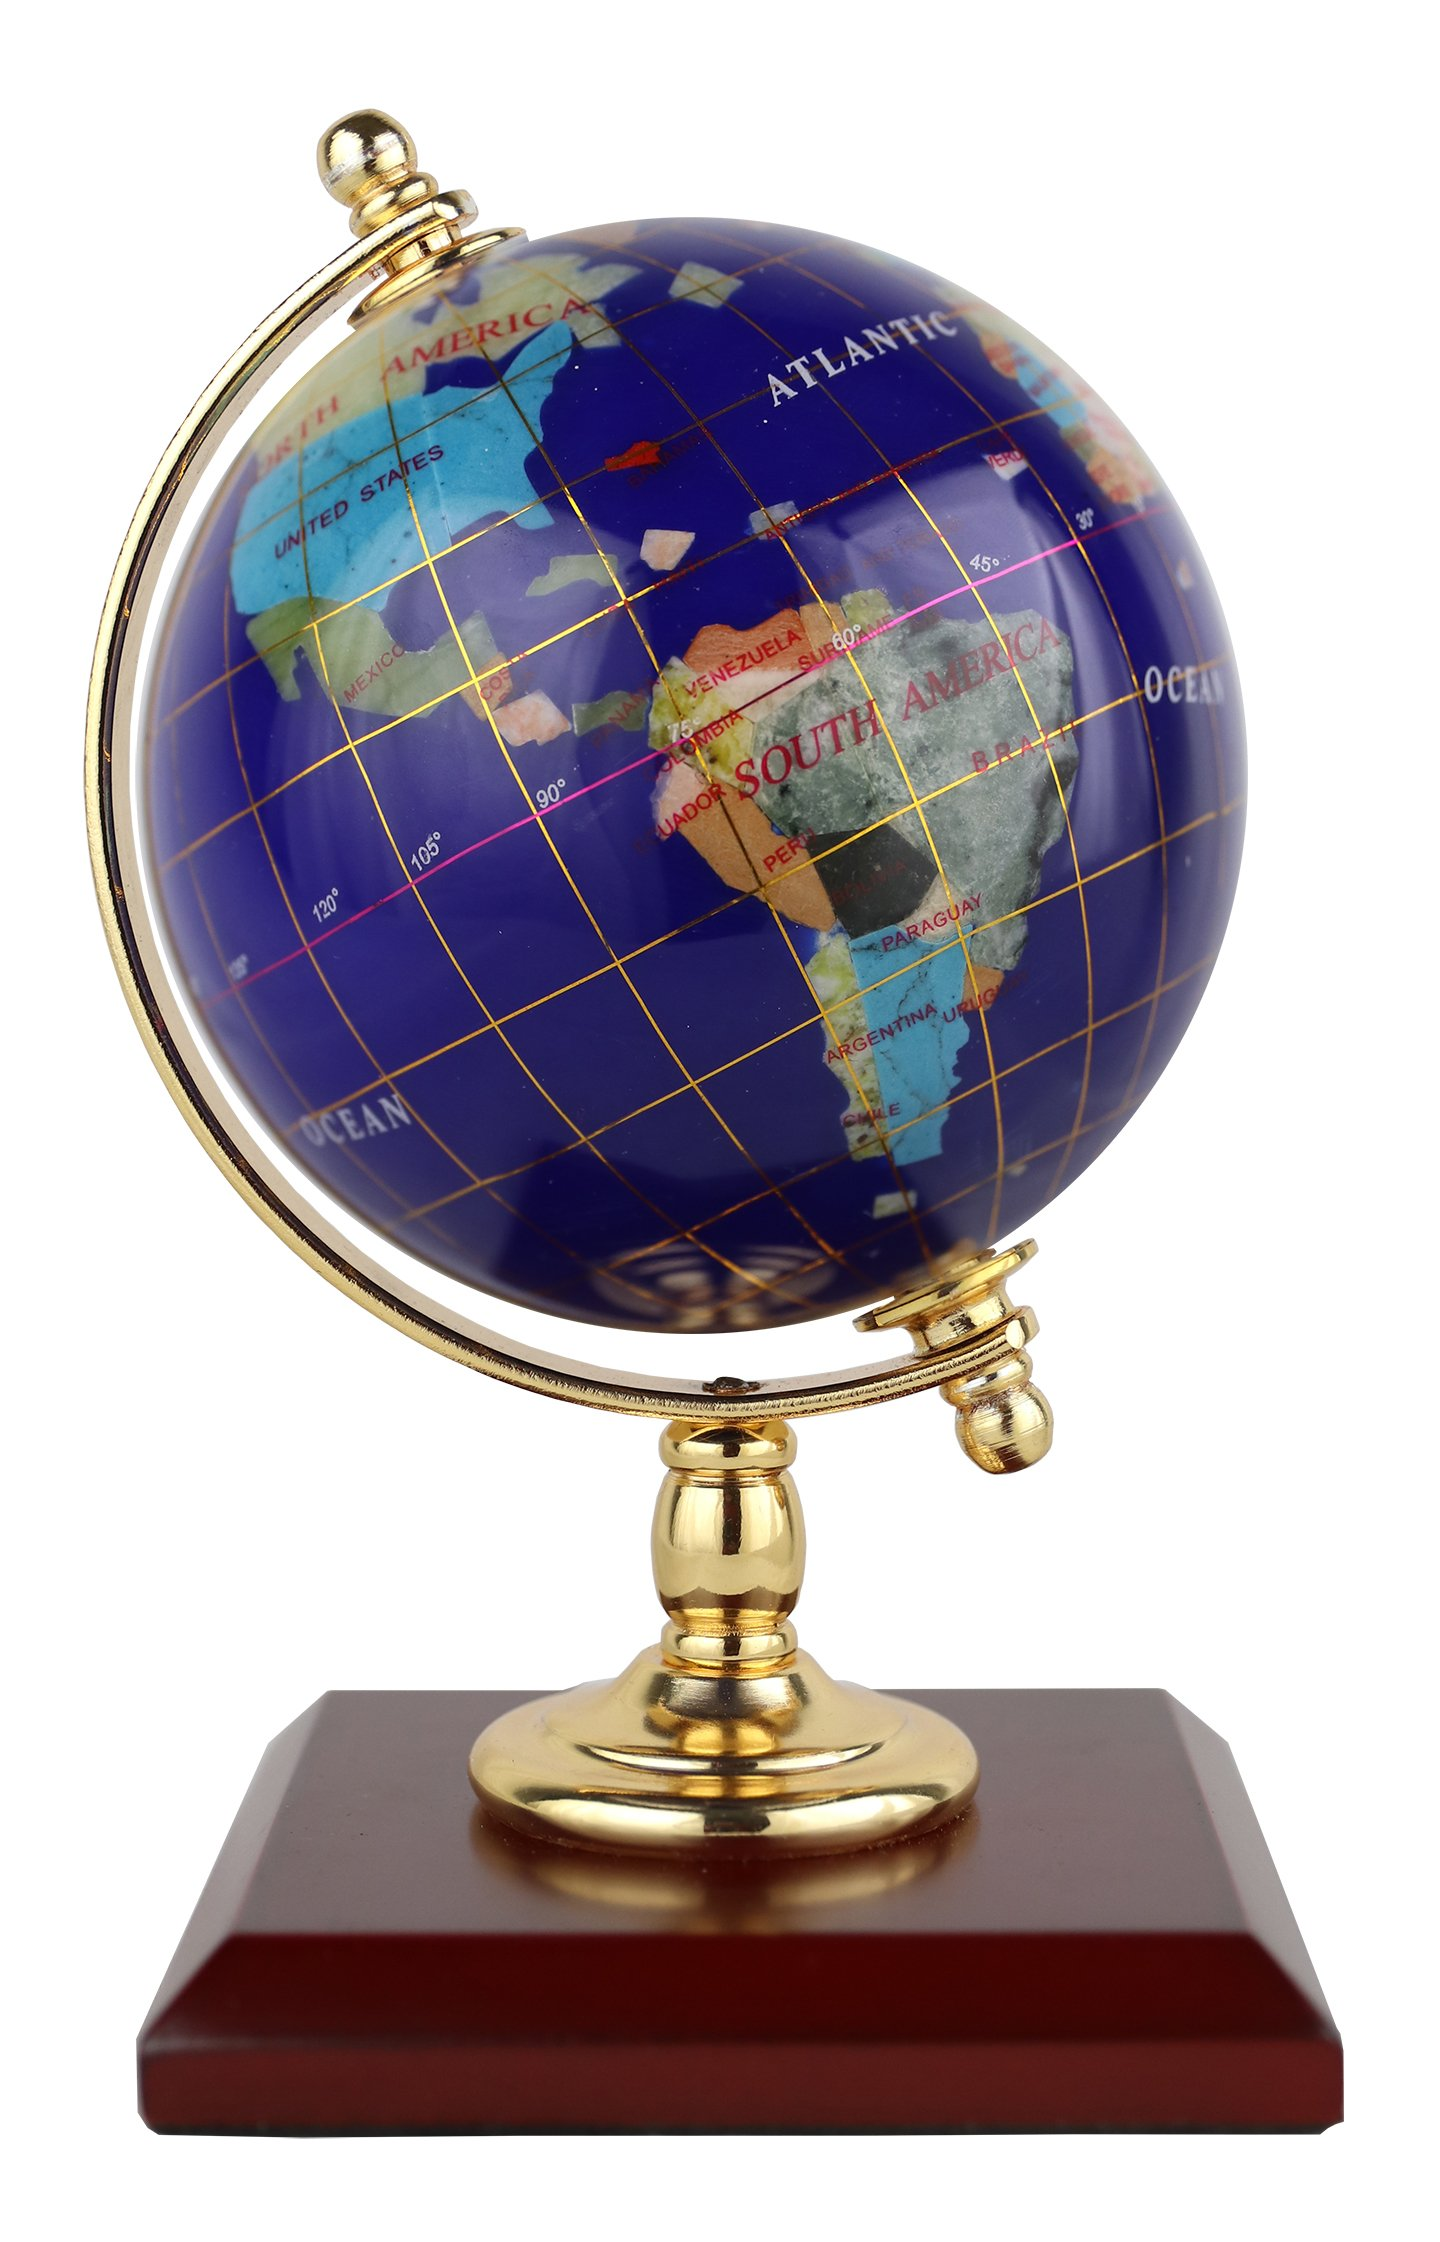 Replogle Desktop Gemstone Globe - Handcrafted with Precious Stones, Ideal for Home or Office Décor, Padded Gift Box Included, Perfect Gift for Any Occasion (4''/10 cm diameter)